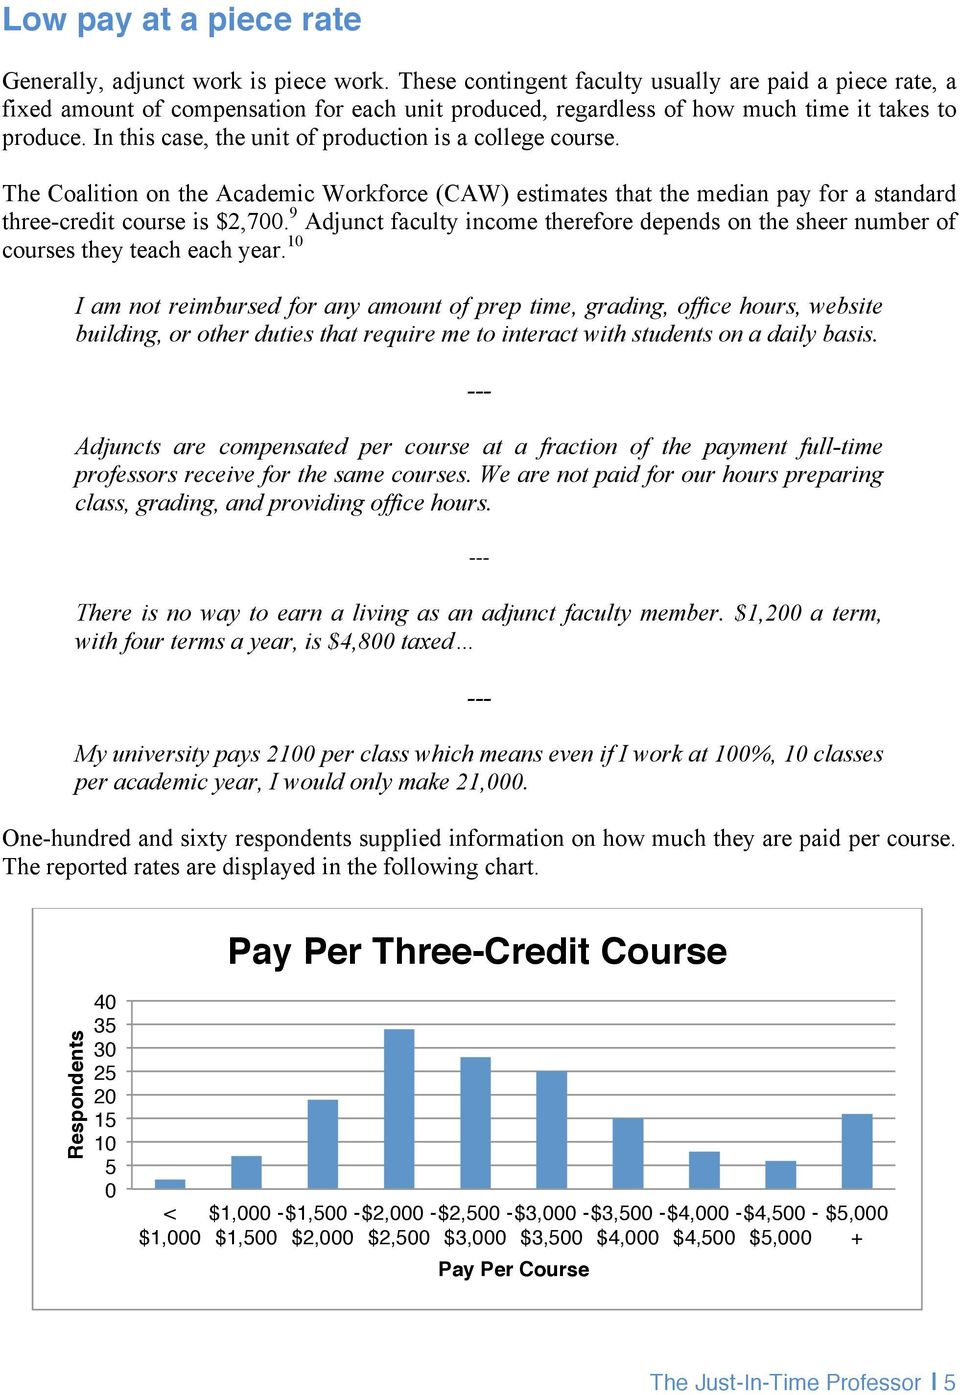 In this case, the unit of production is a college course. The Coalition on the Academic Workforce (CAW) estimates that the median pay for a standard three-credit course is $2,700.